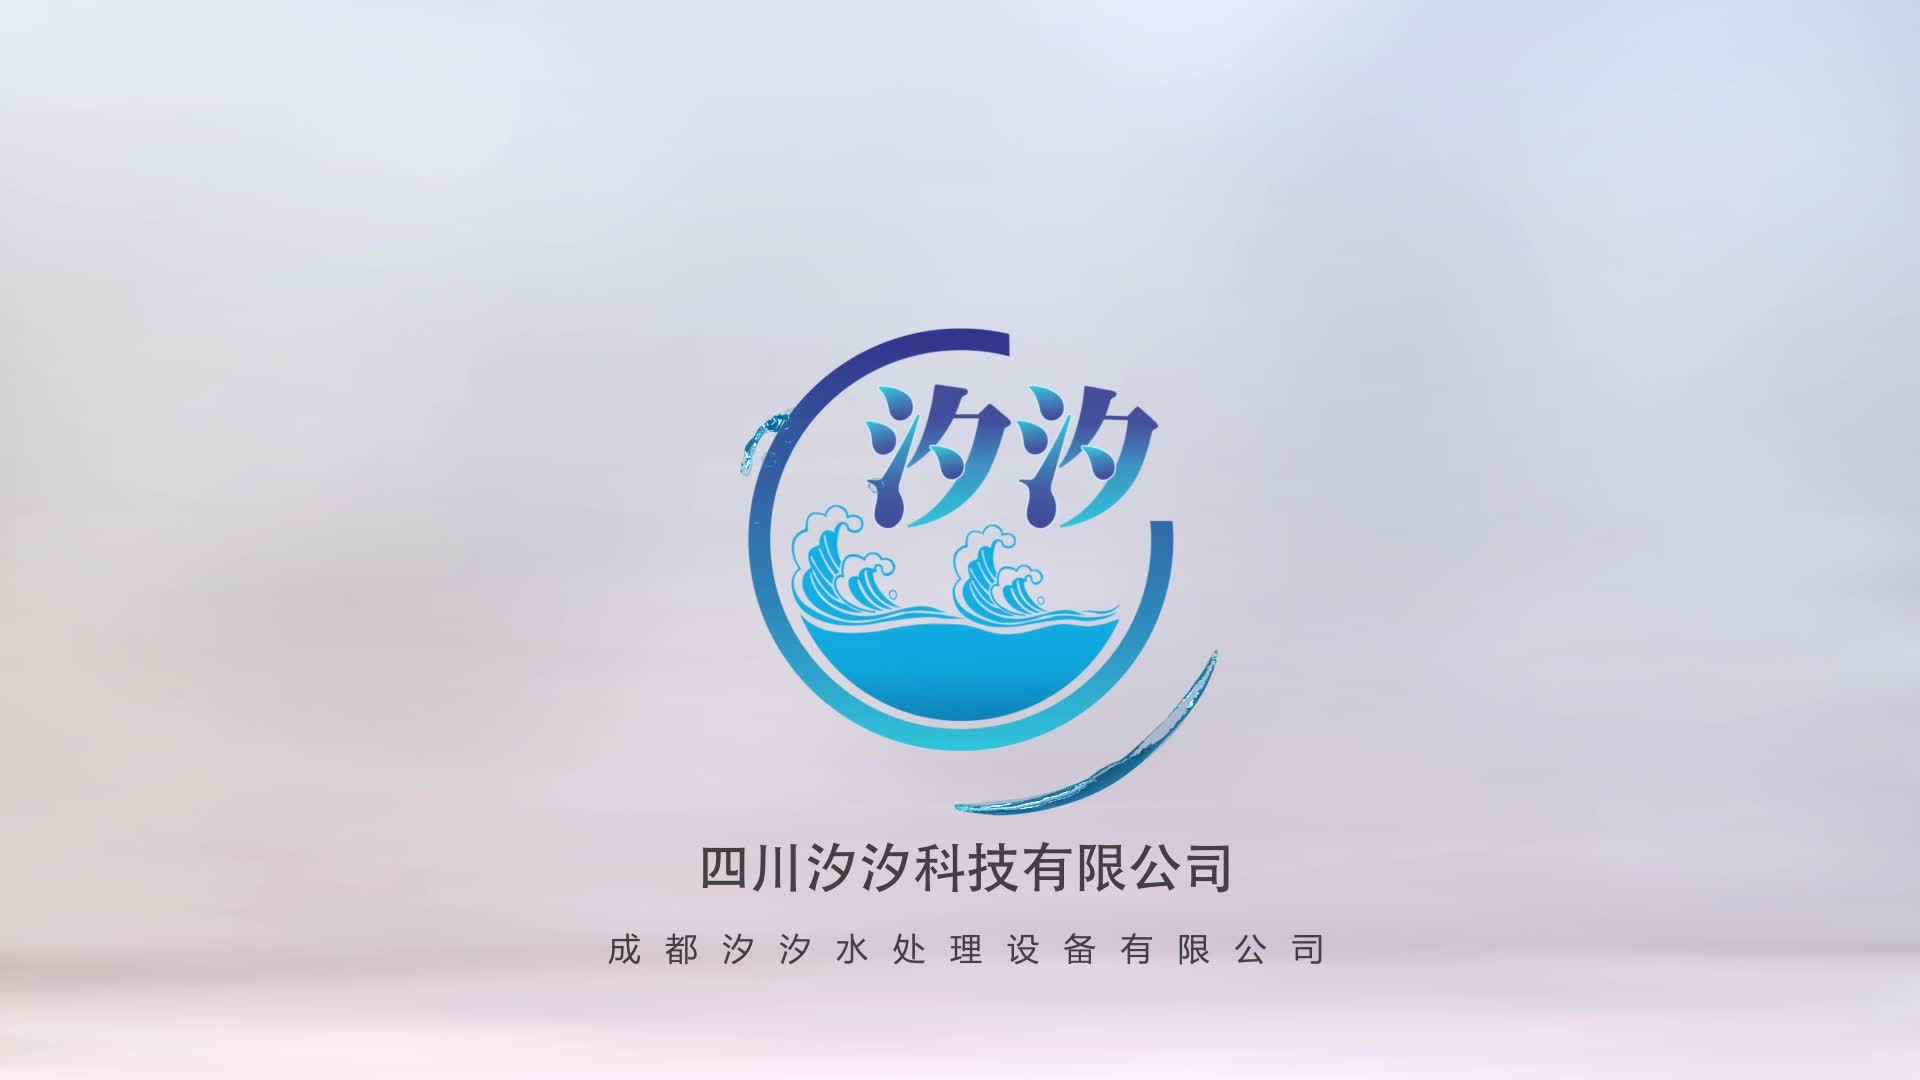 Xixi Customized Mineral Uf Water Purification System